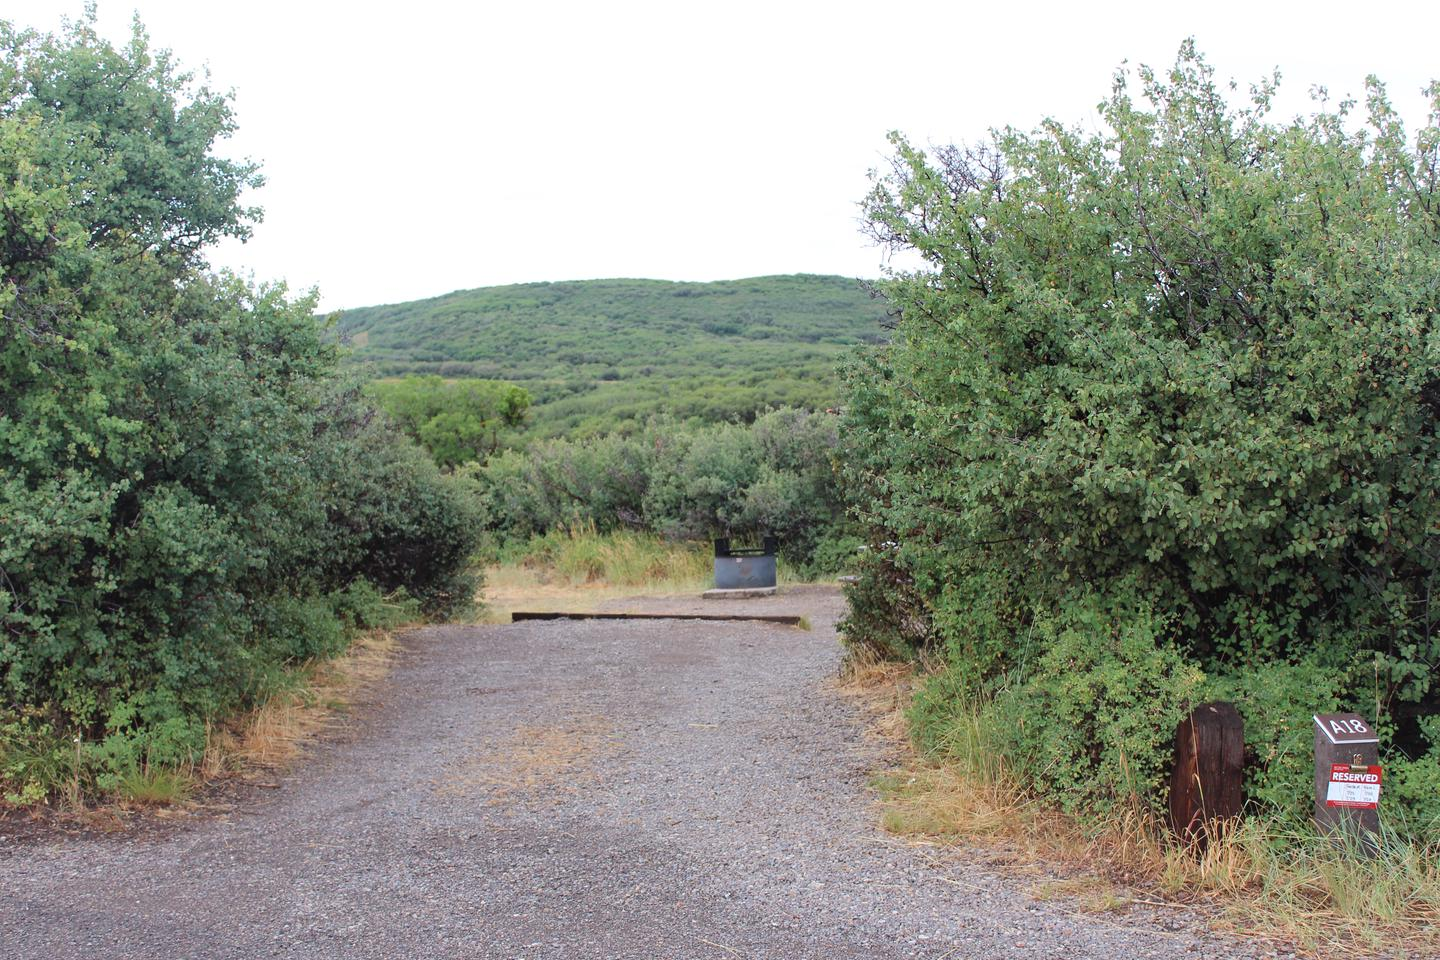 View of parking area within Campsite A-018